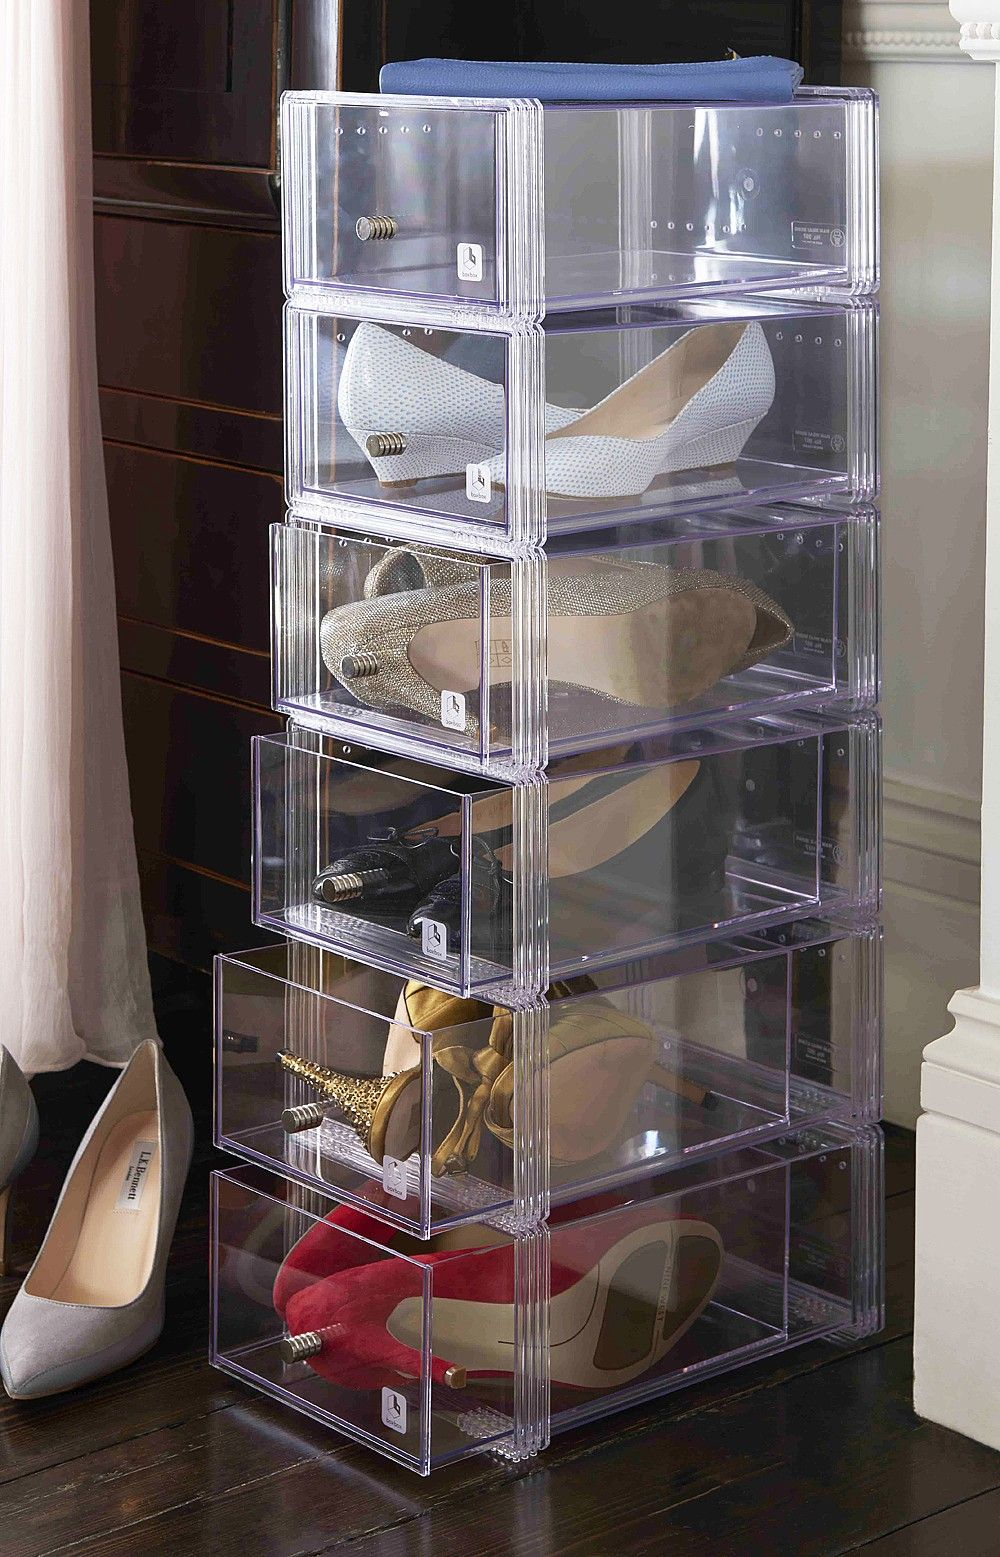 Image Pin by SUSAN PERCIVAL on Wardrobes